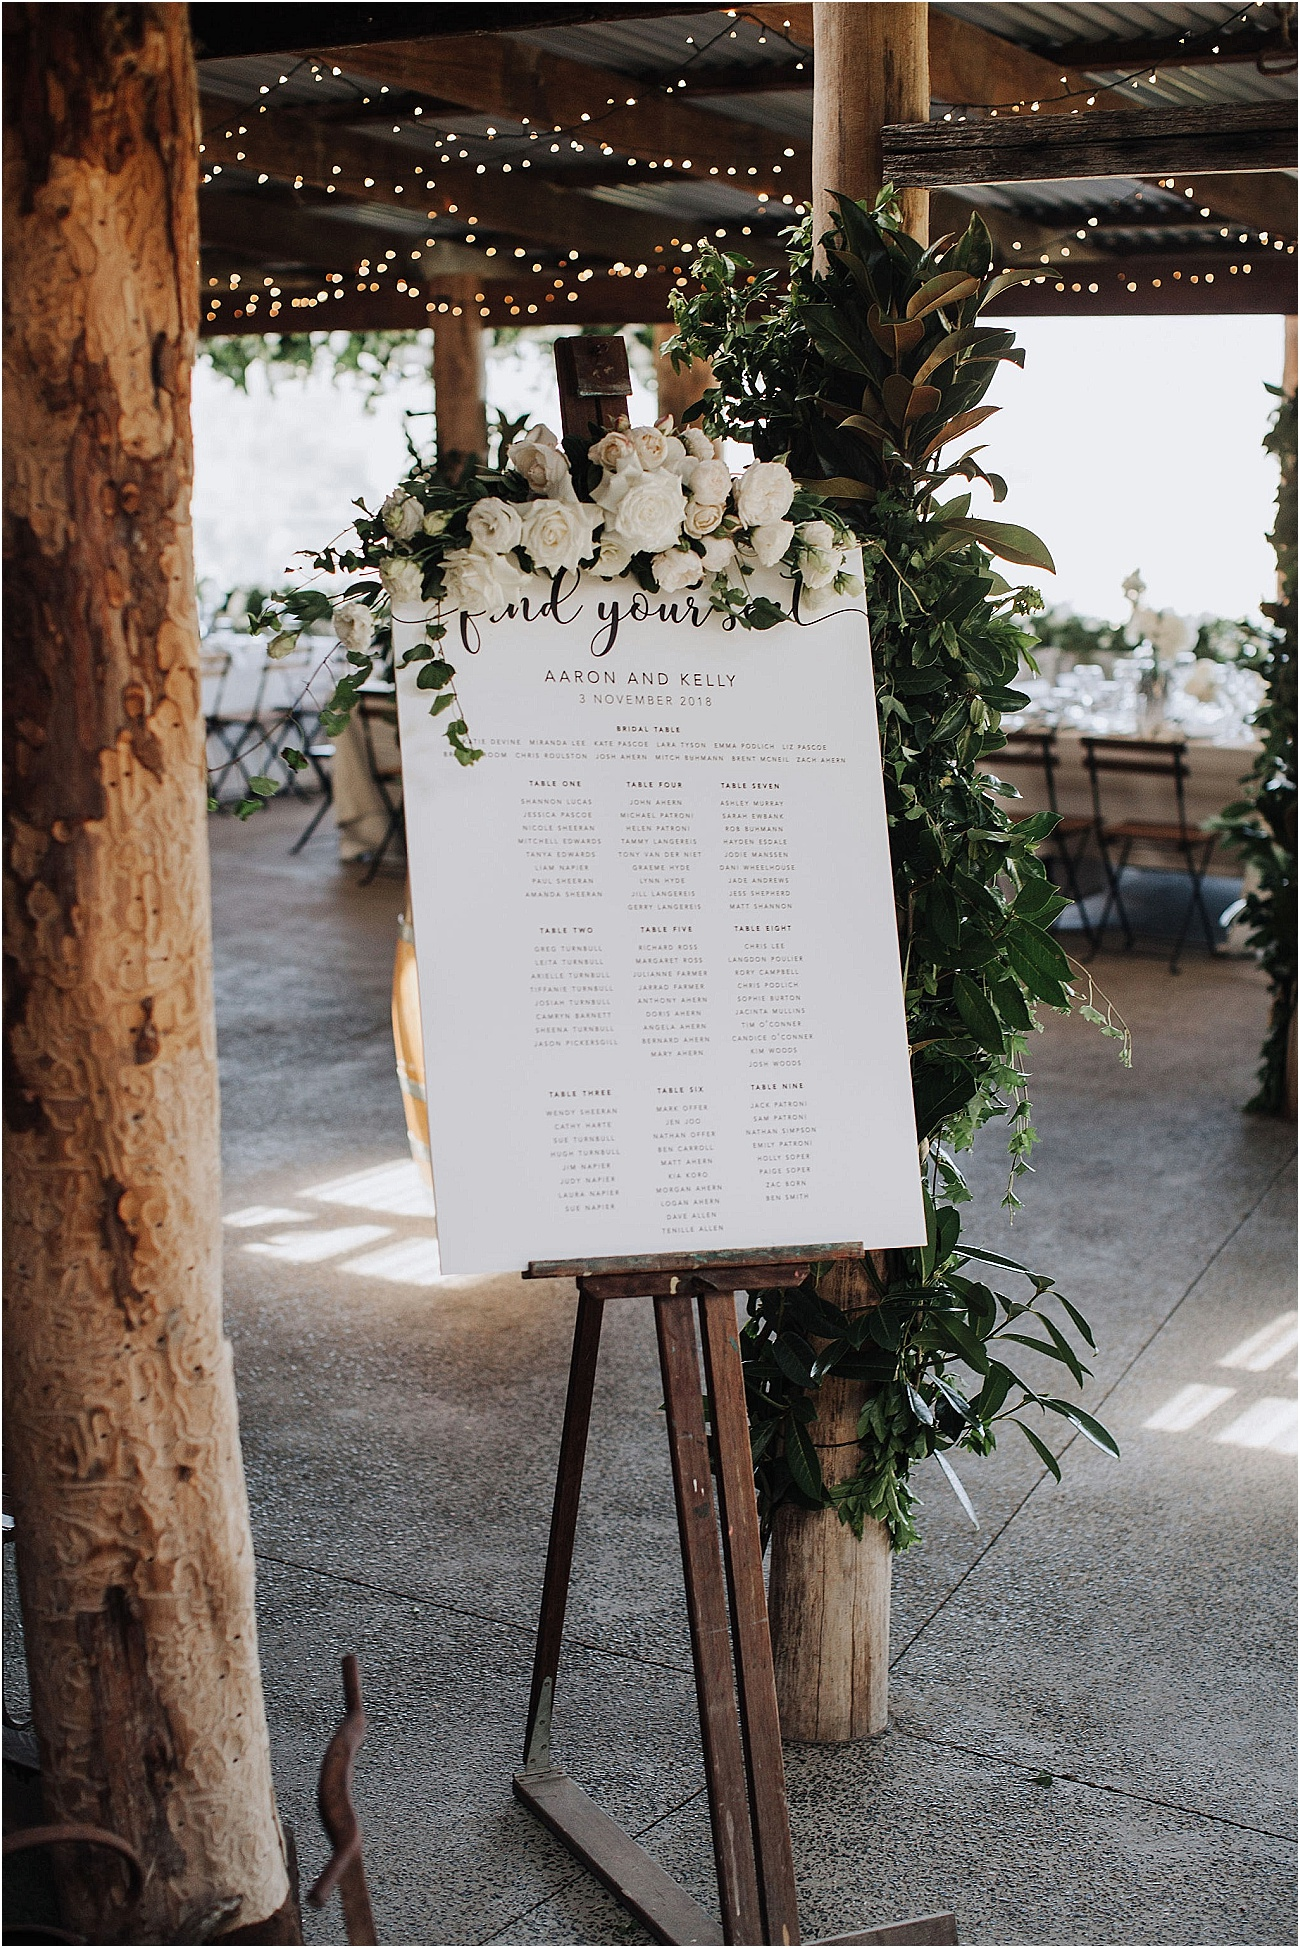 Seating board floral feature with white blooms and greenery